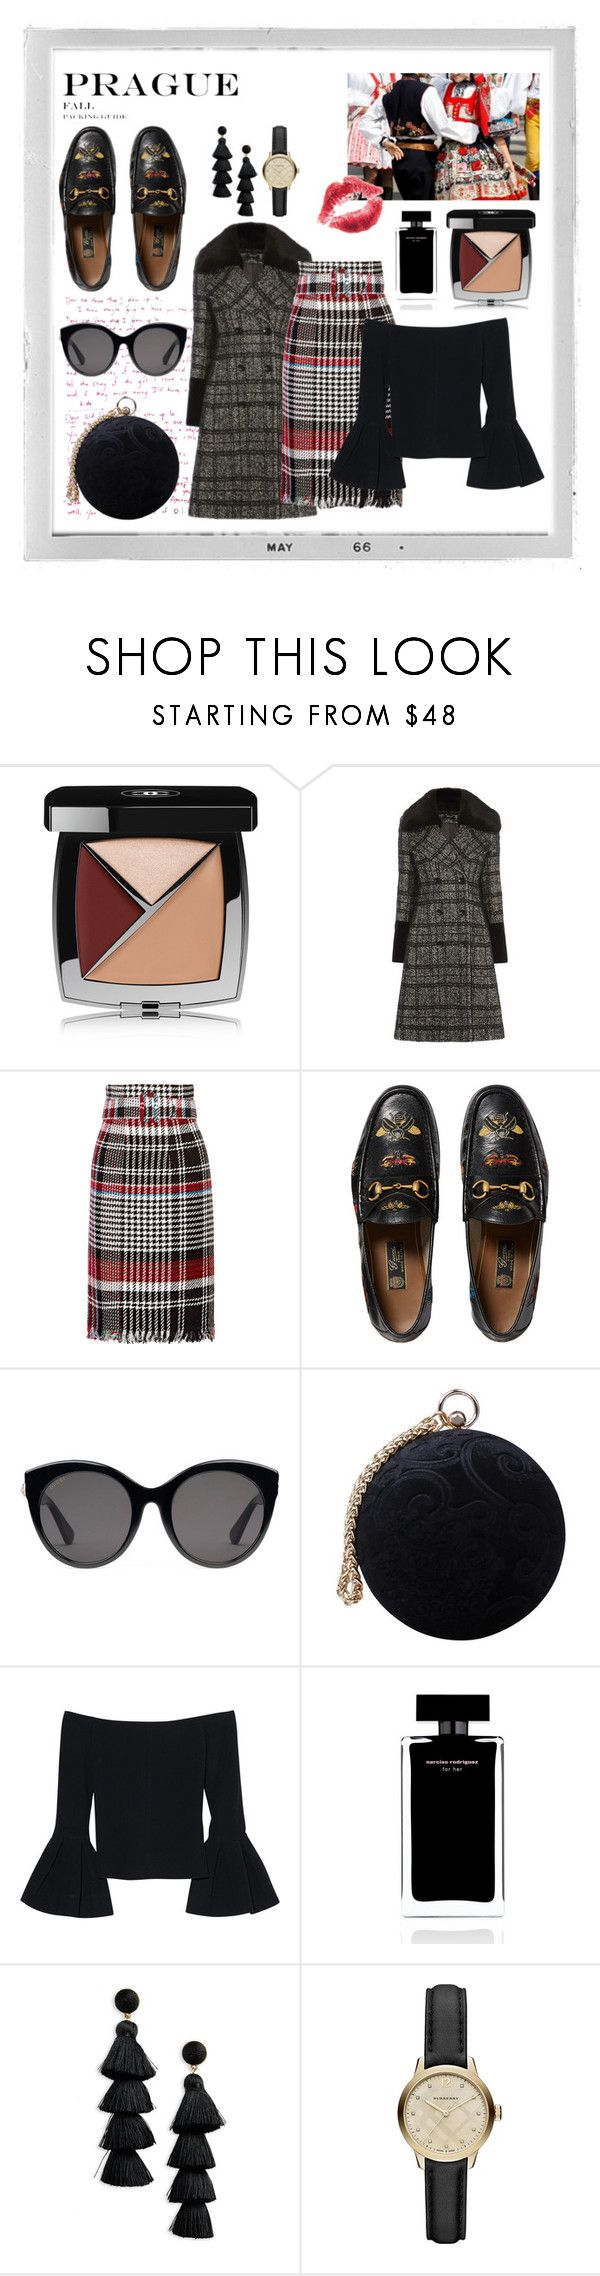 """""""Bussiness Travel To-Go Look"""" by alfalovina on Polyvore featuring Polaroid, Chanel, Oscar de la Renta, Gucci, Carvela, Alexis, Narciso Rodriguez, BaubleBar and Burberry"""